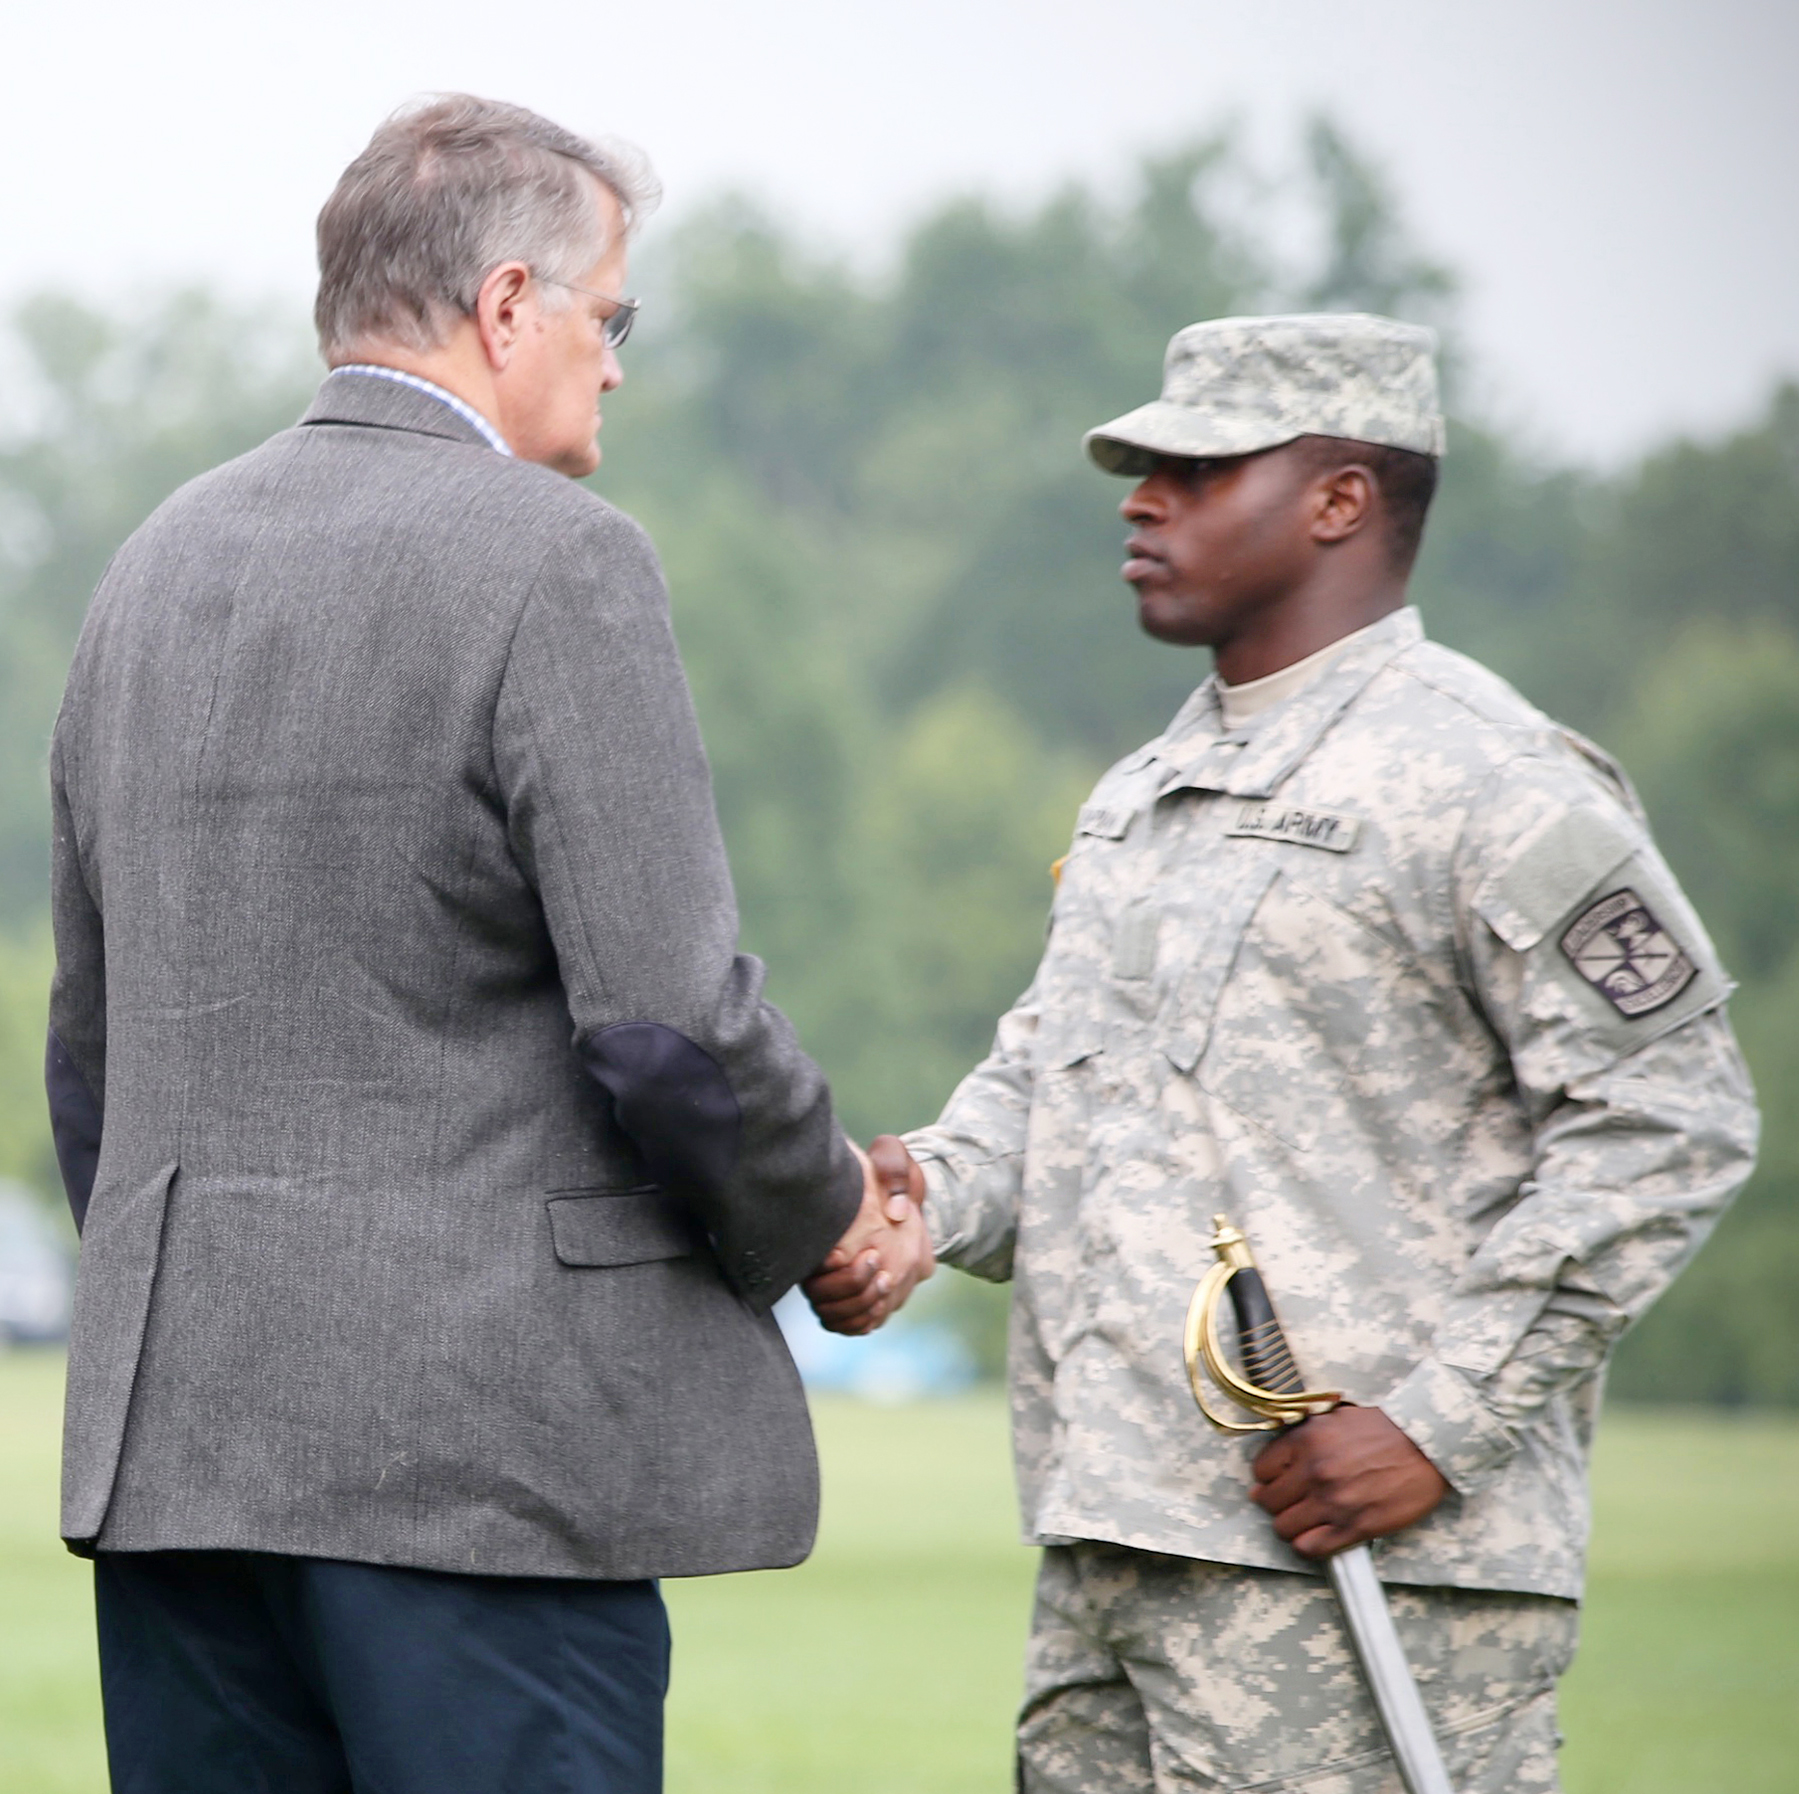 FVSU cadet receives coveted Army award